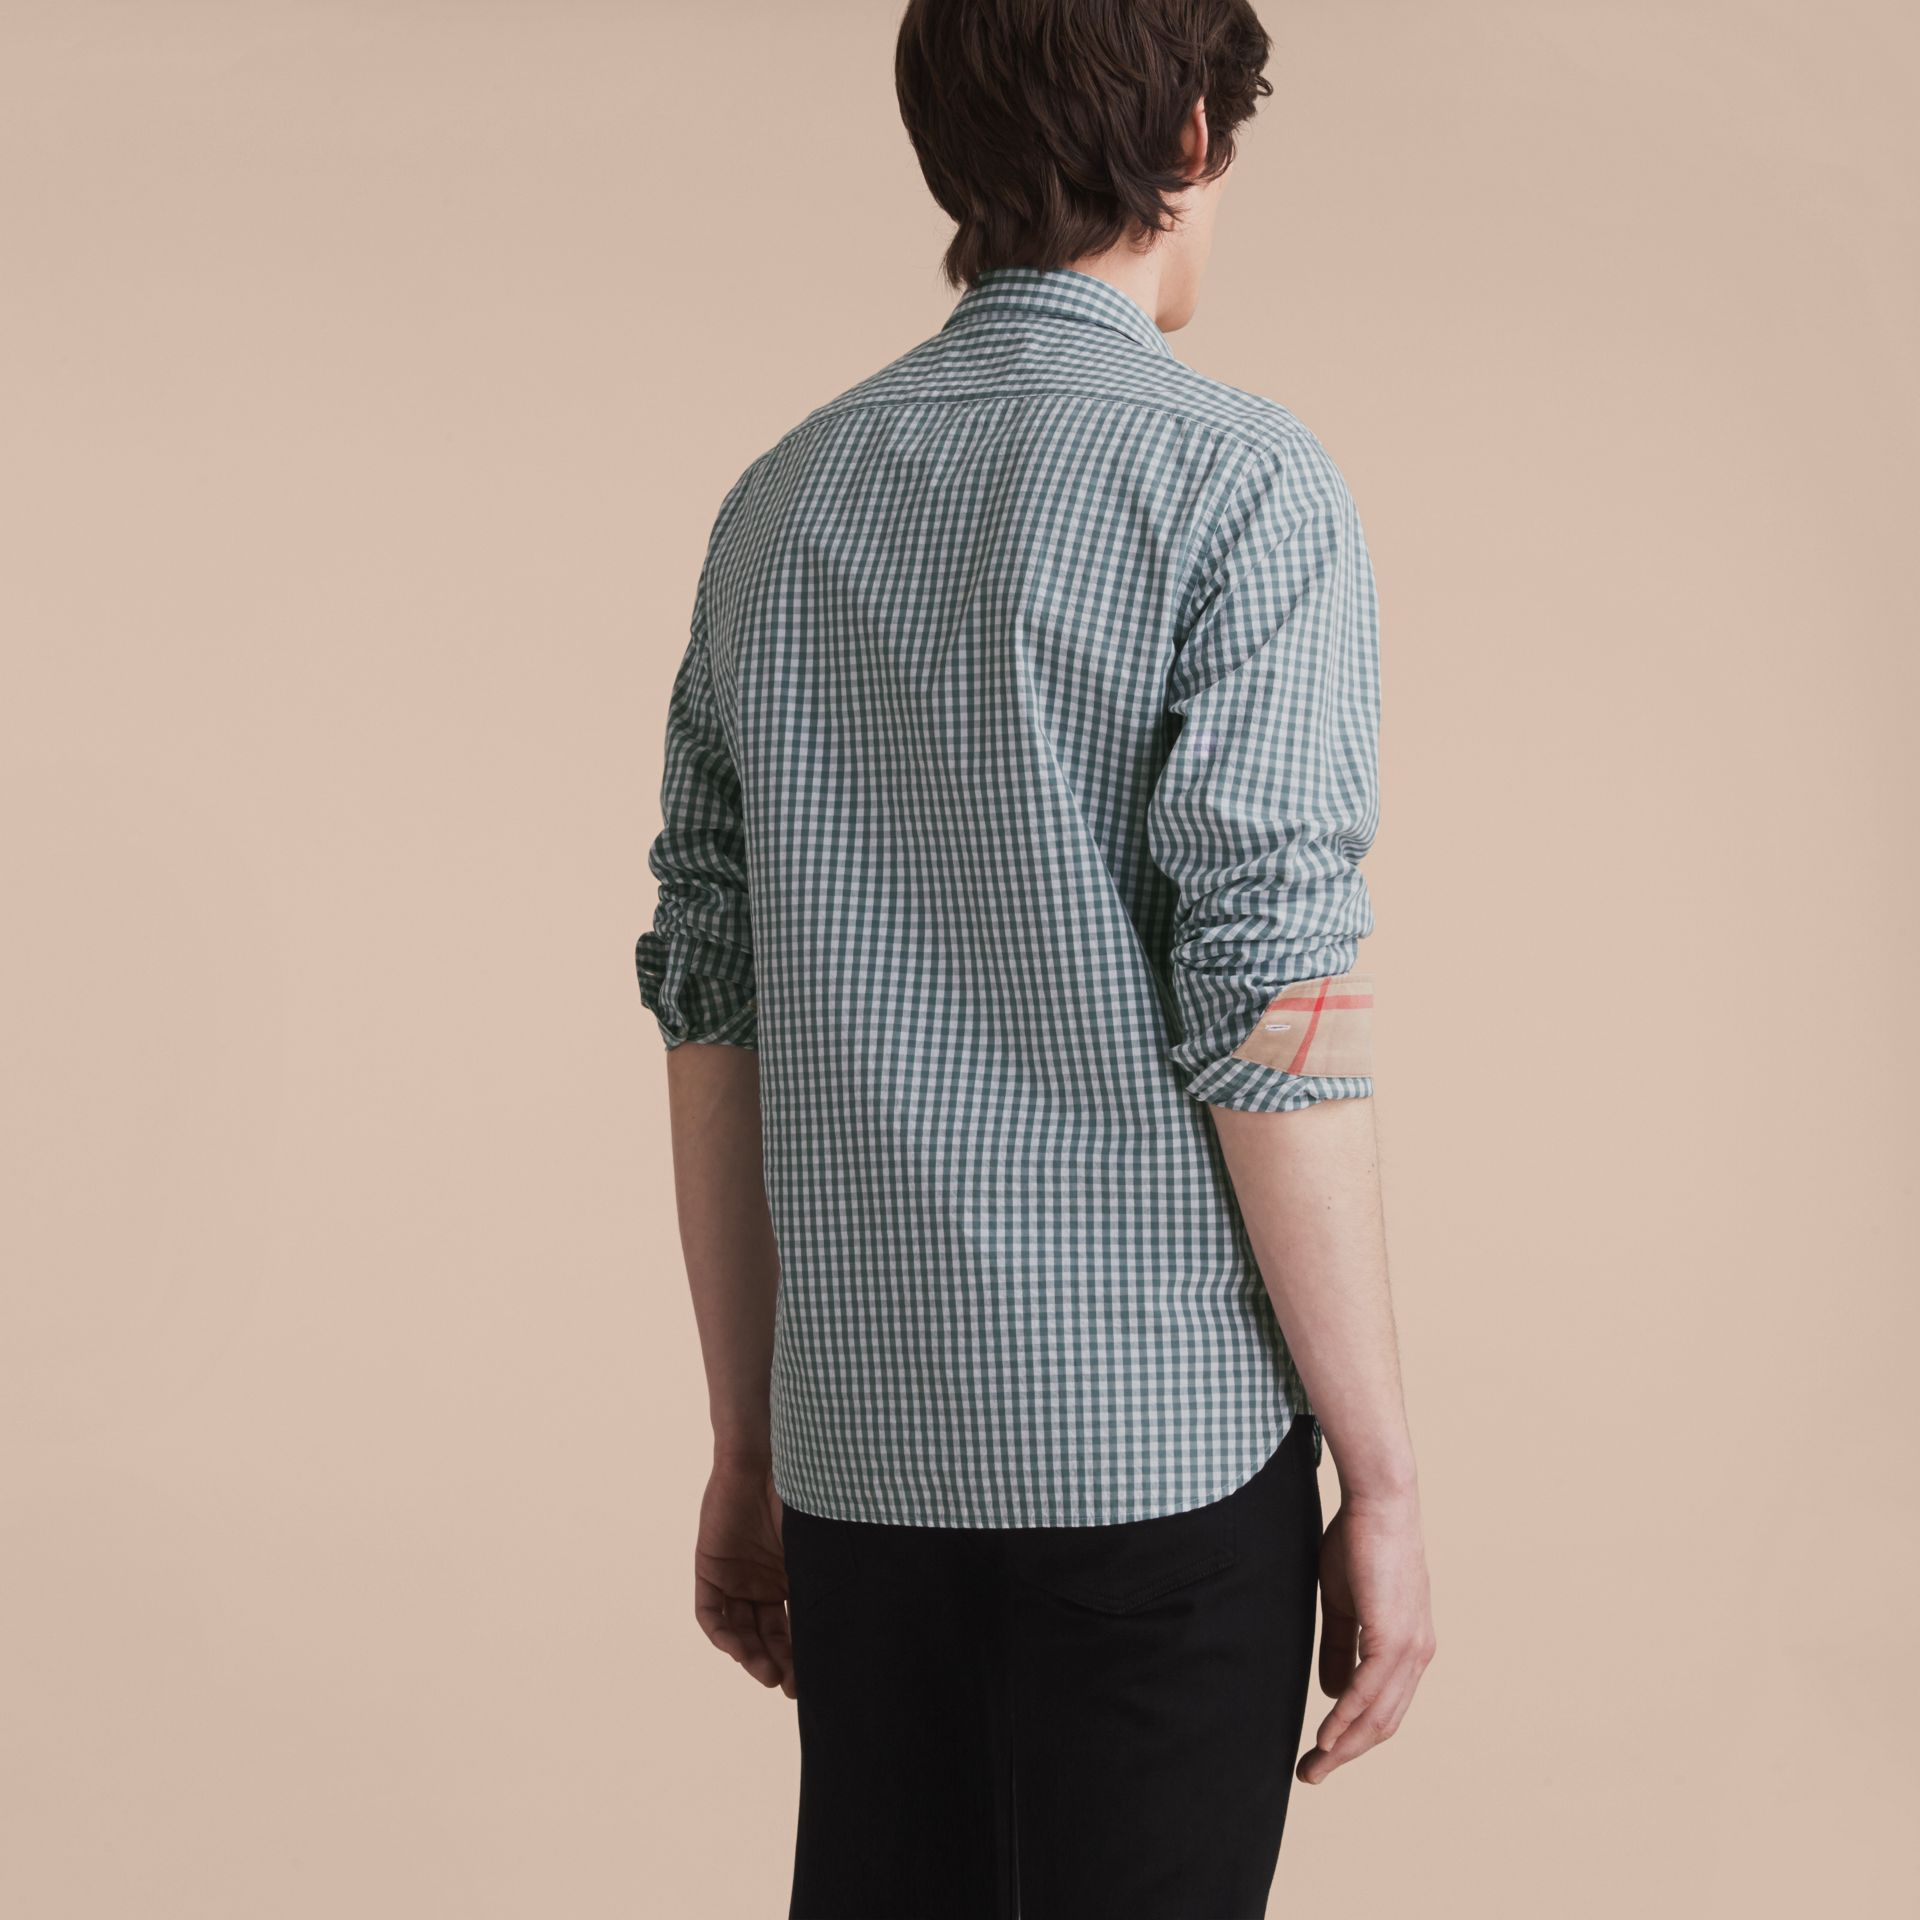 Gingham Cotton Poplin Shirt with Check Detail in Dusty Teal Blue - Men | Burberry Singapore - gallery image 3